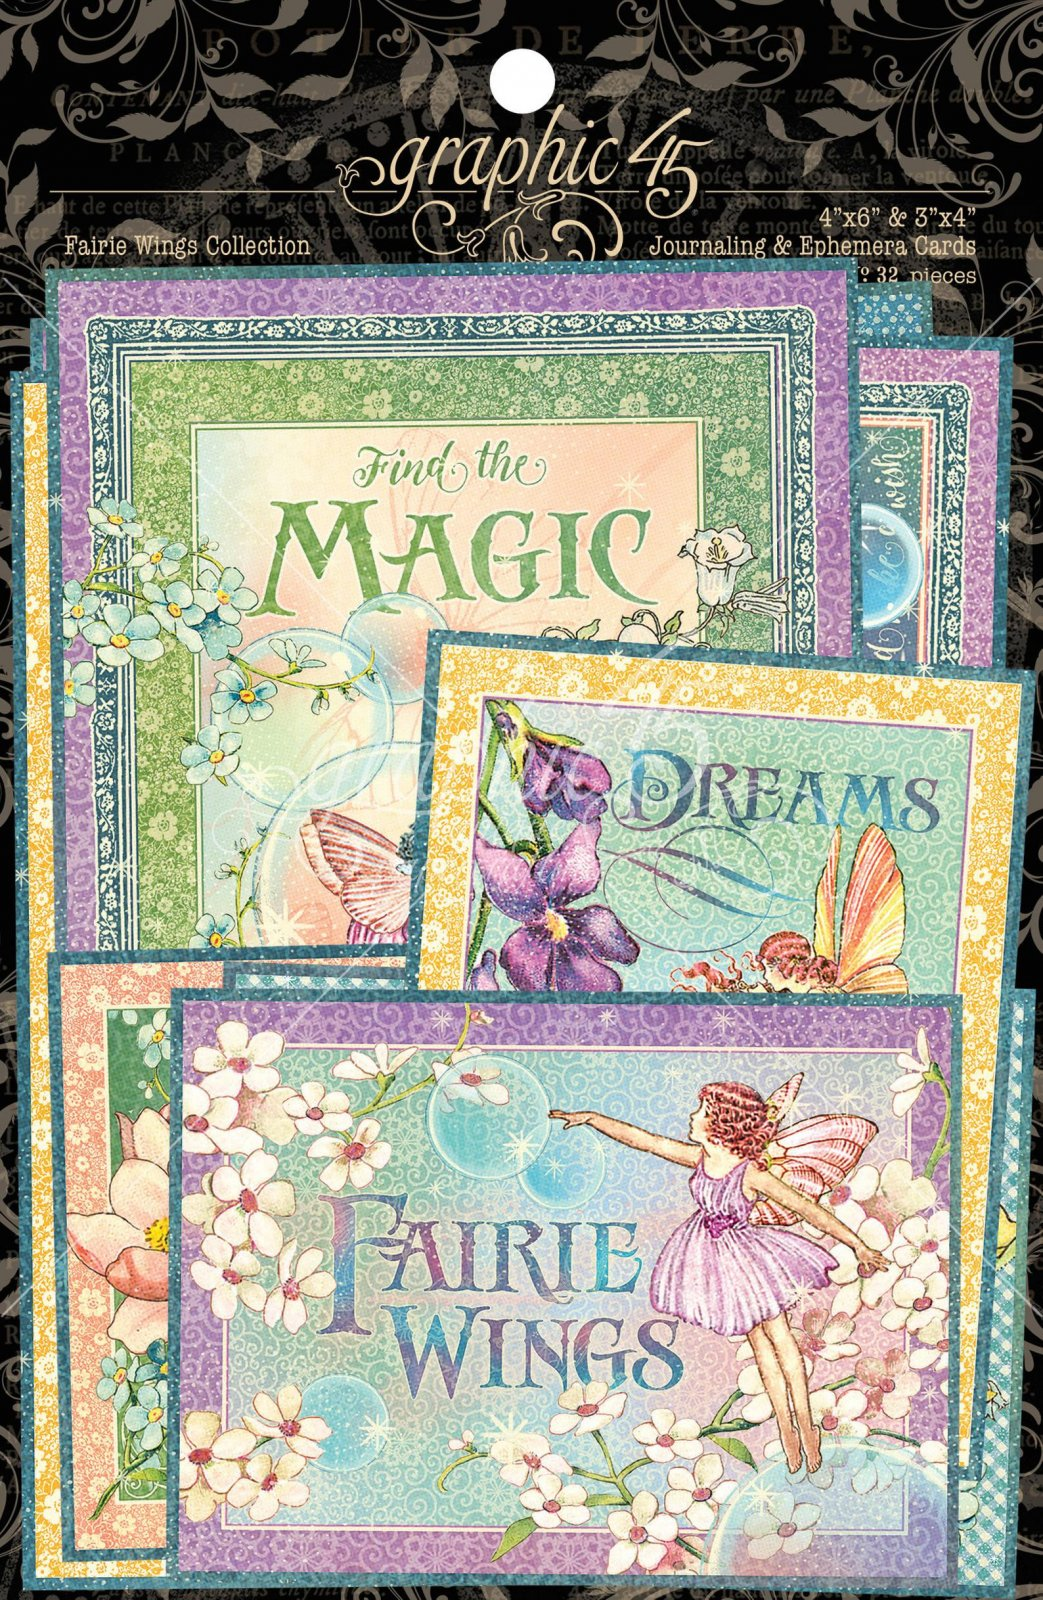 Graphic 45 - Fairie Wings Ephemera & Journaling Cards